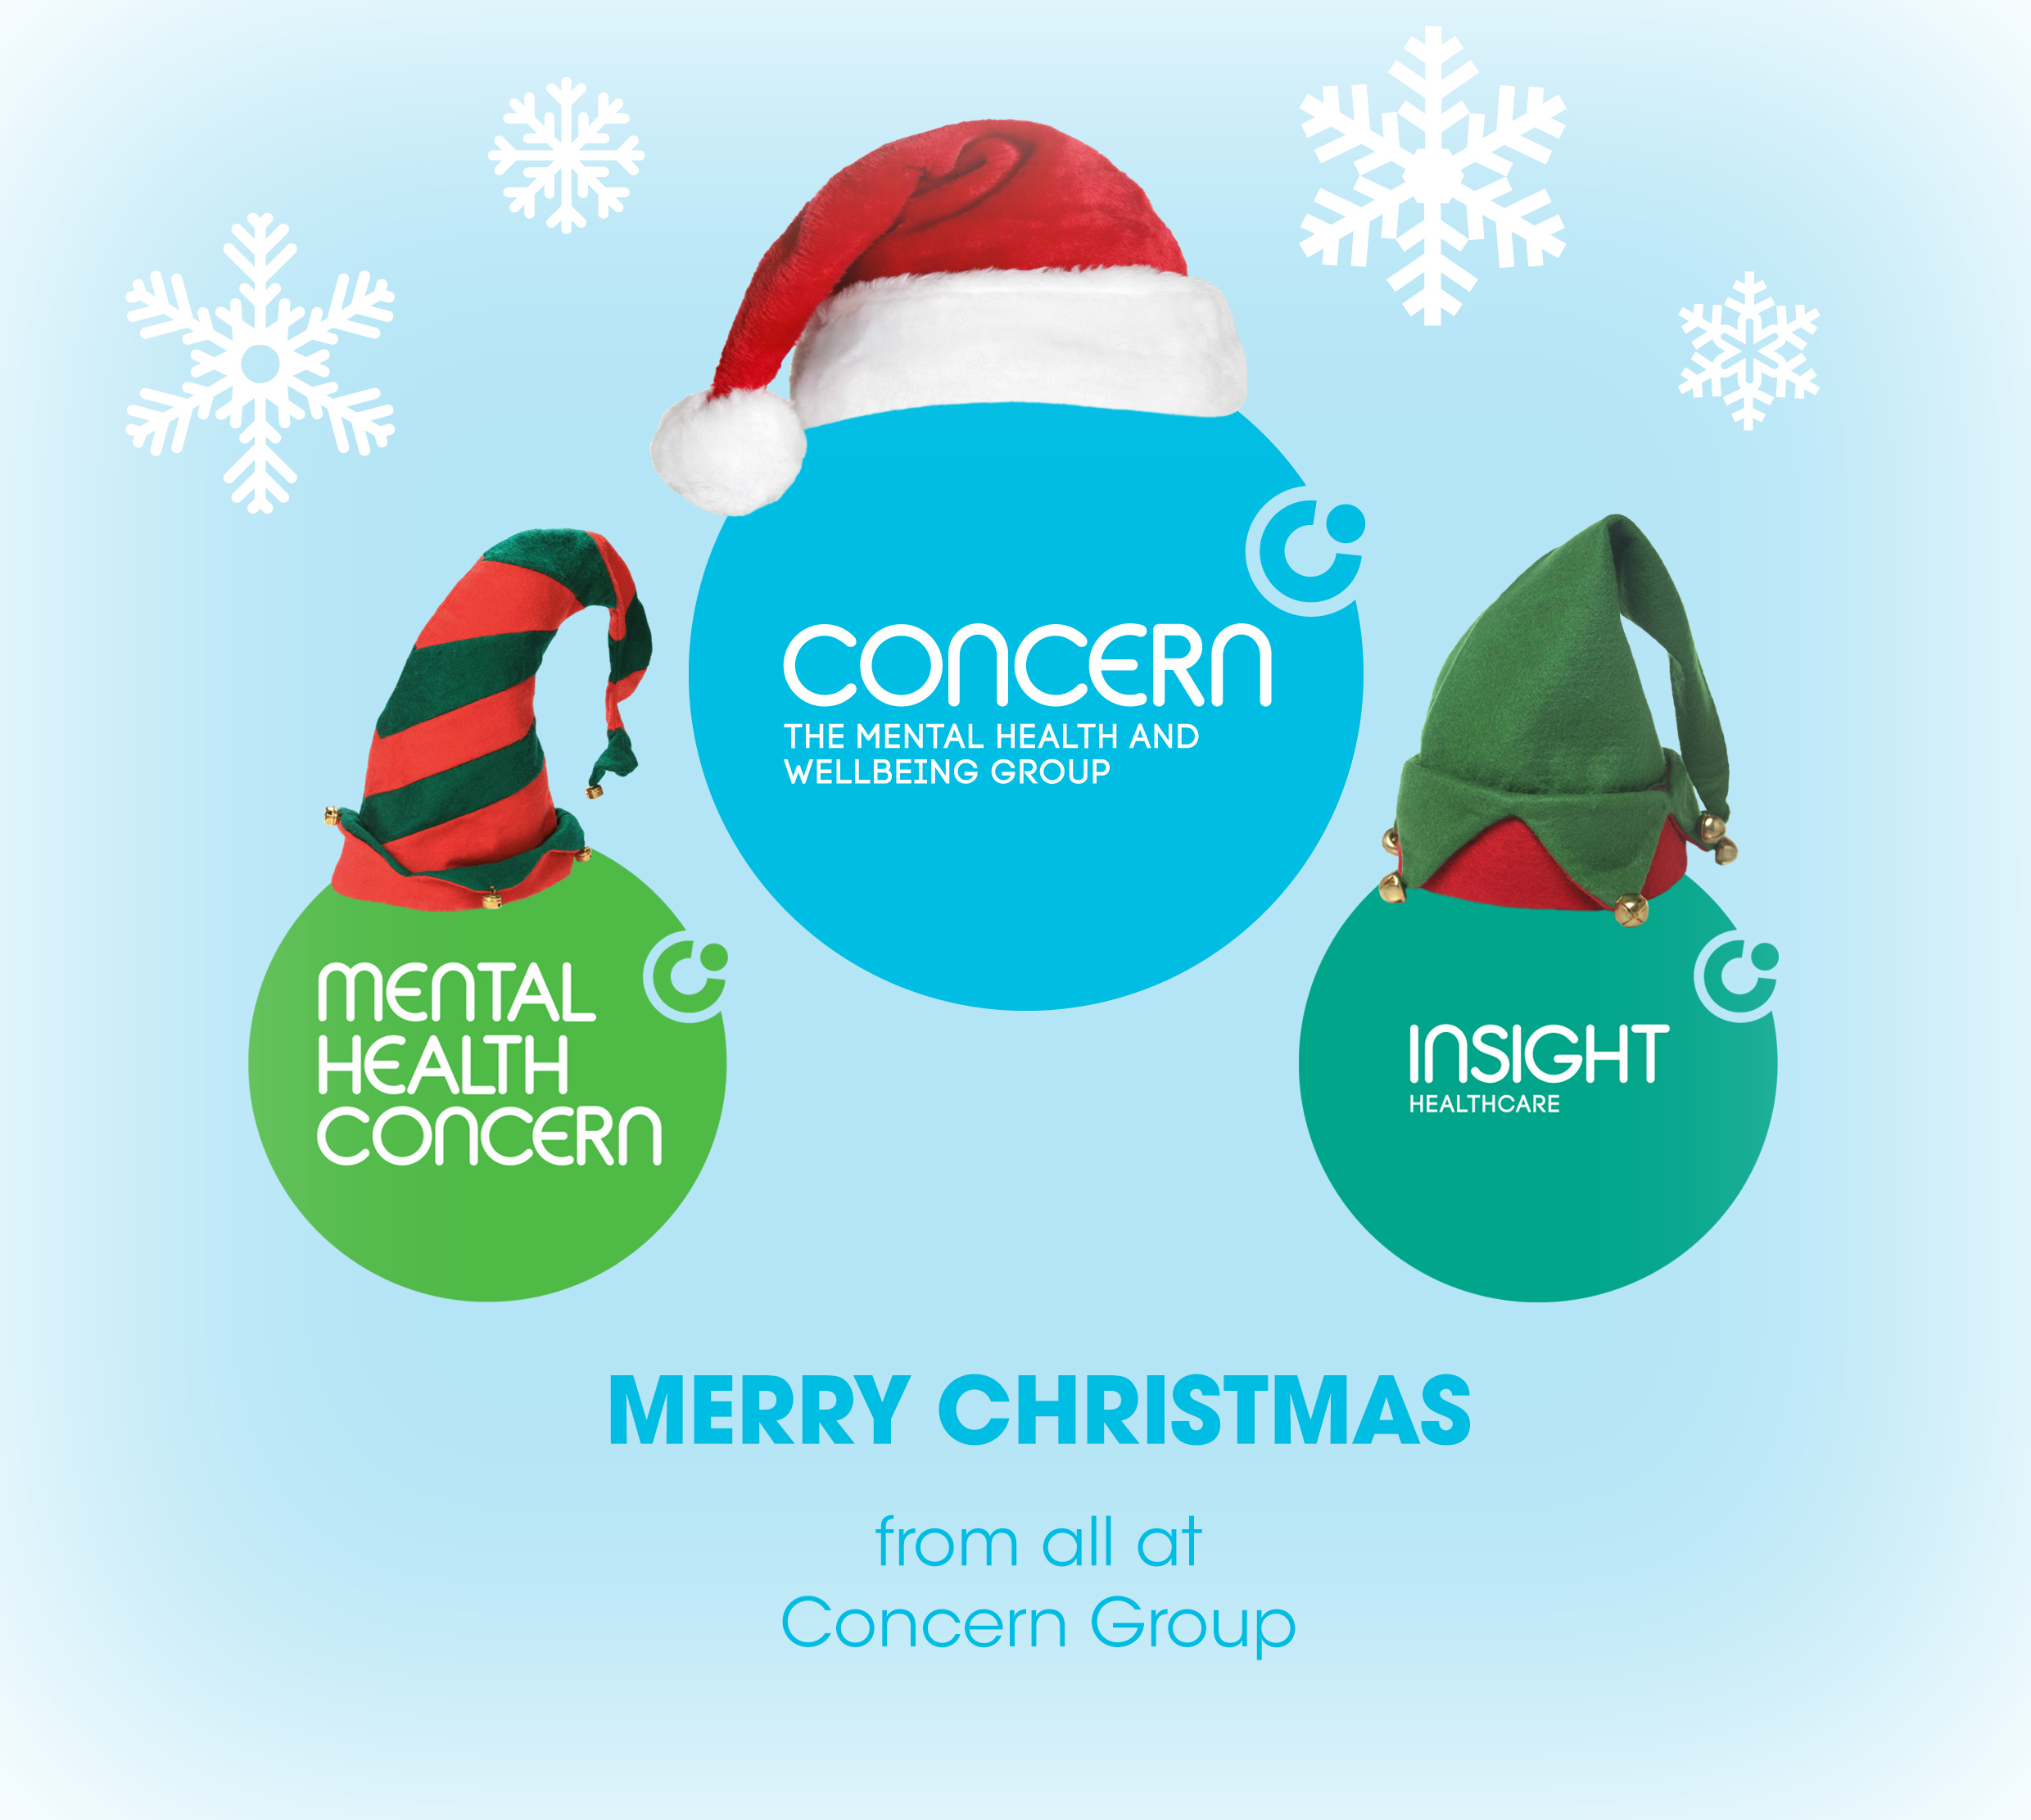 Merry Christmas from Concern Group